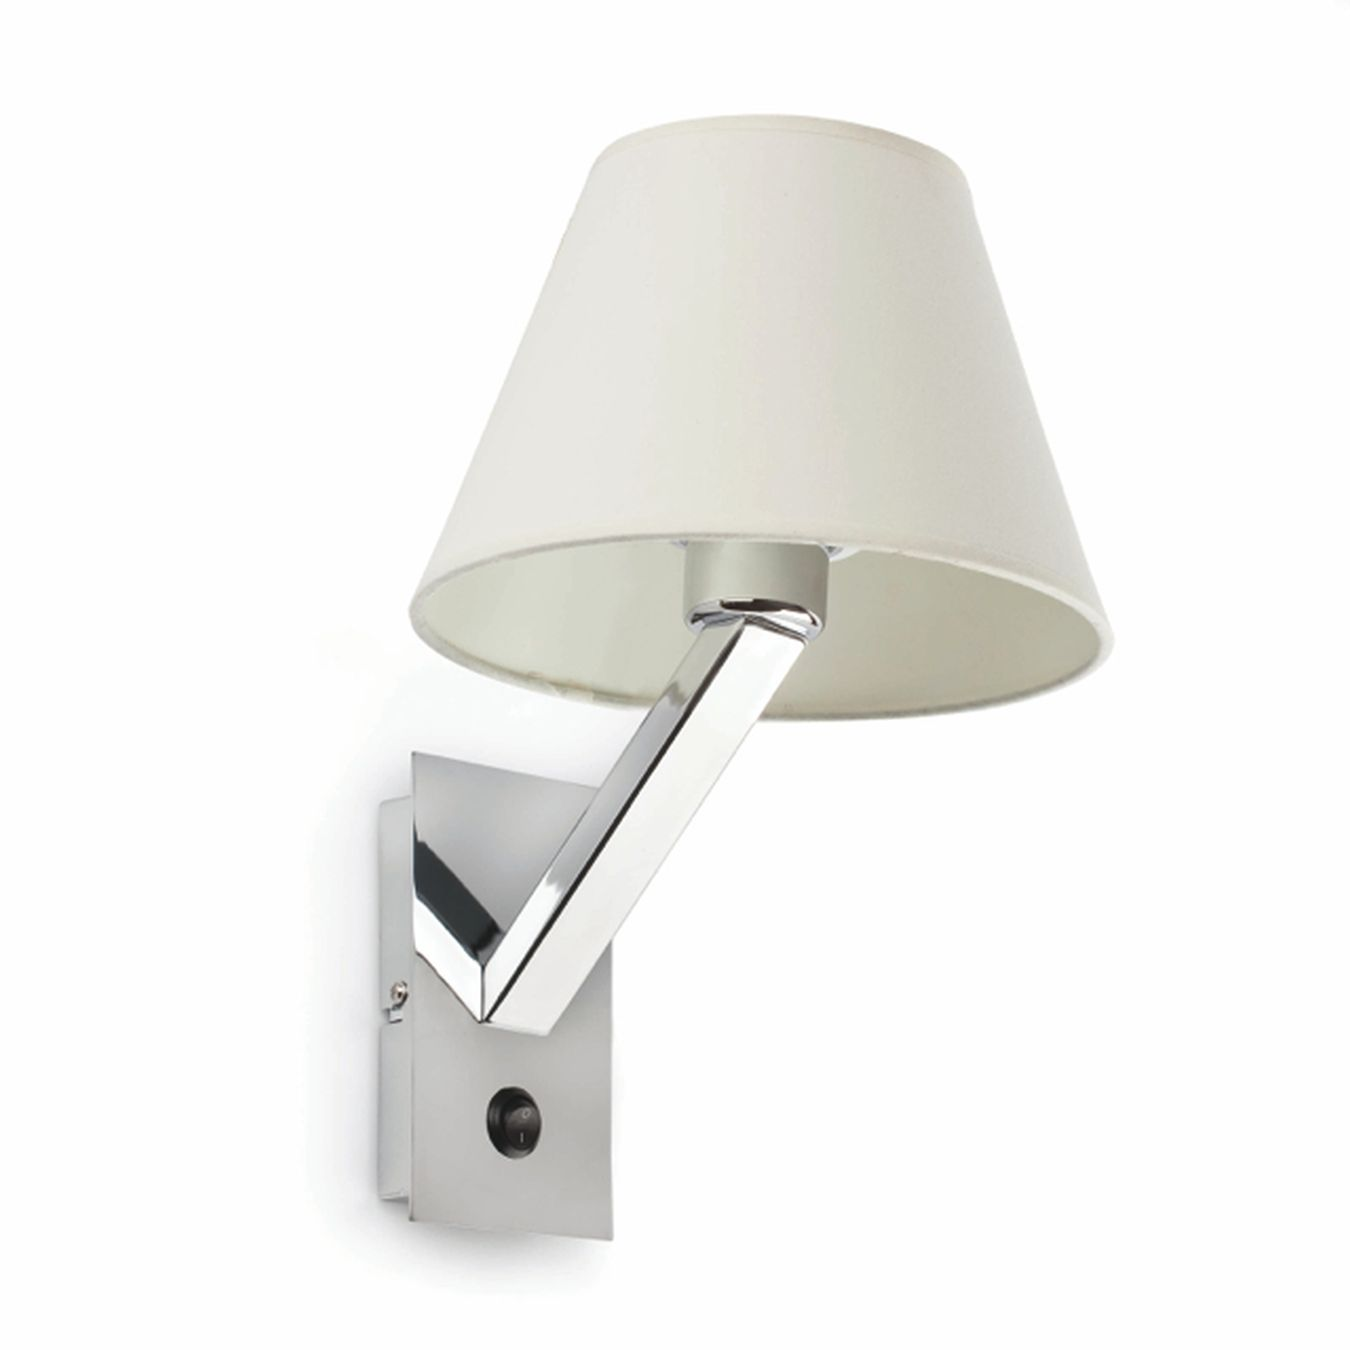 Comprar aplique de pared blanco con interruptor moma 1 - Lampara de pared ...